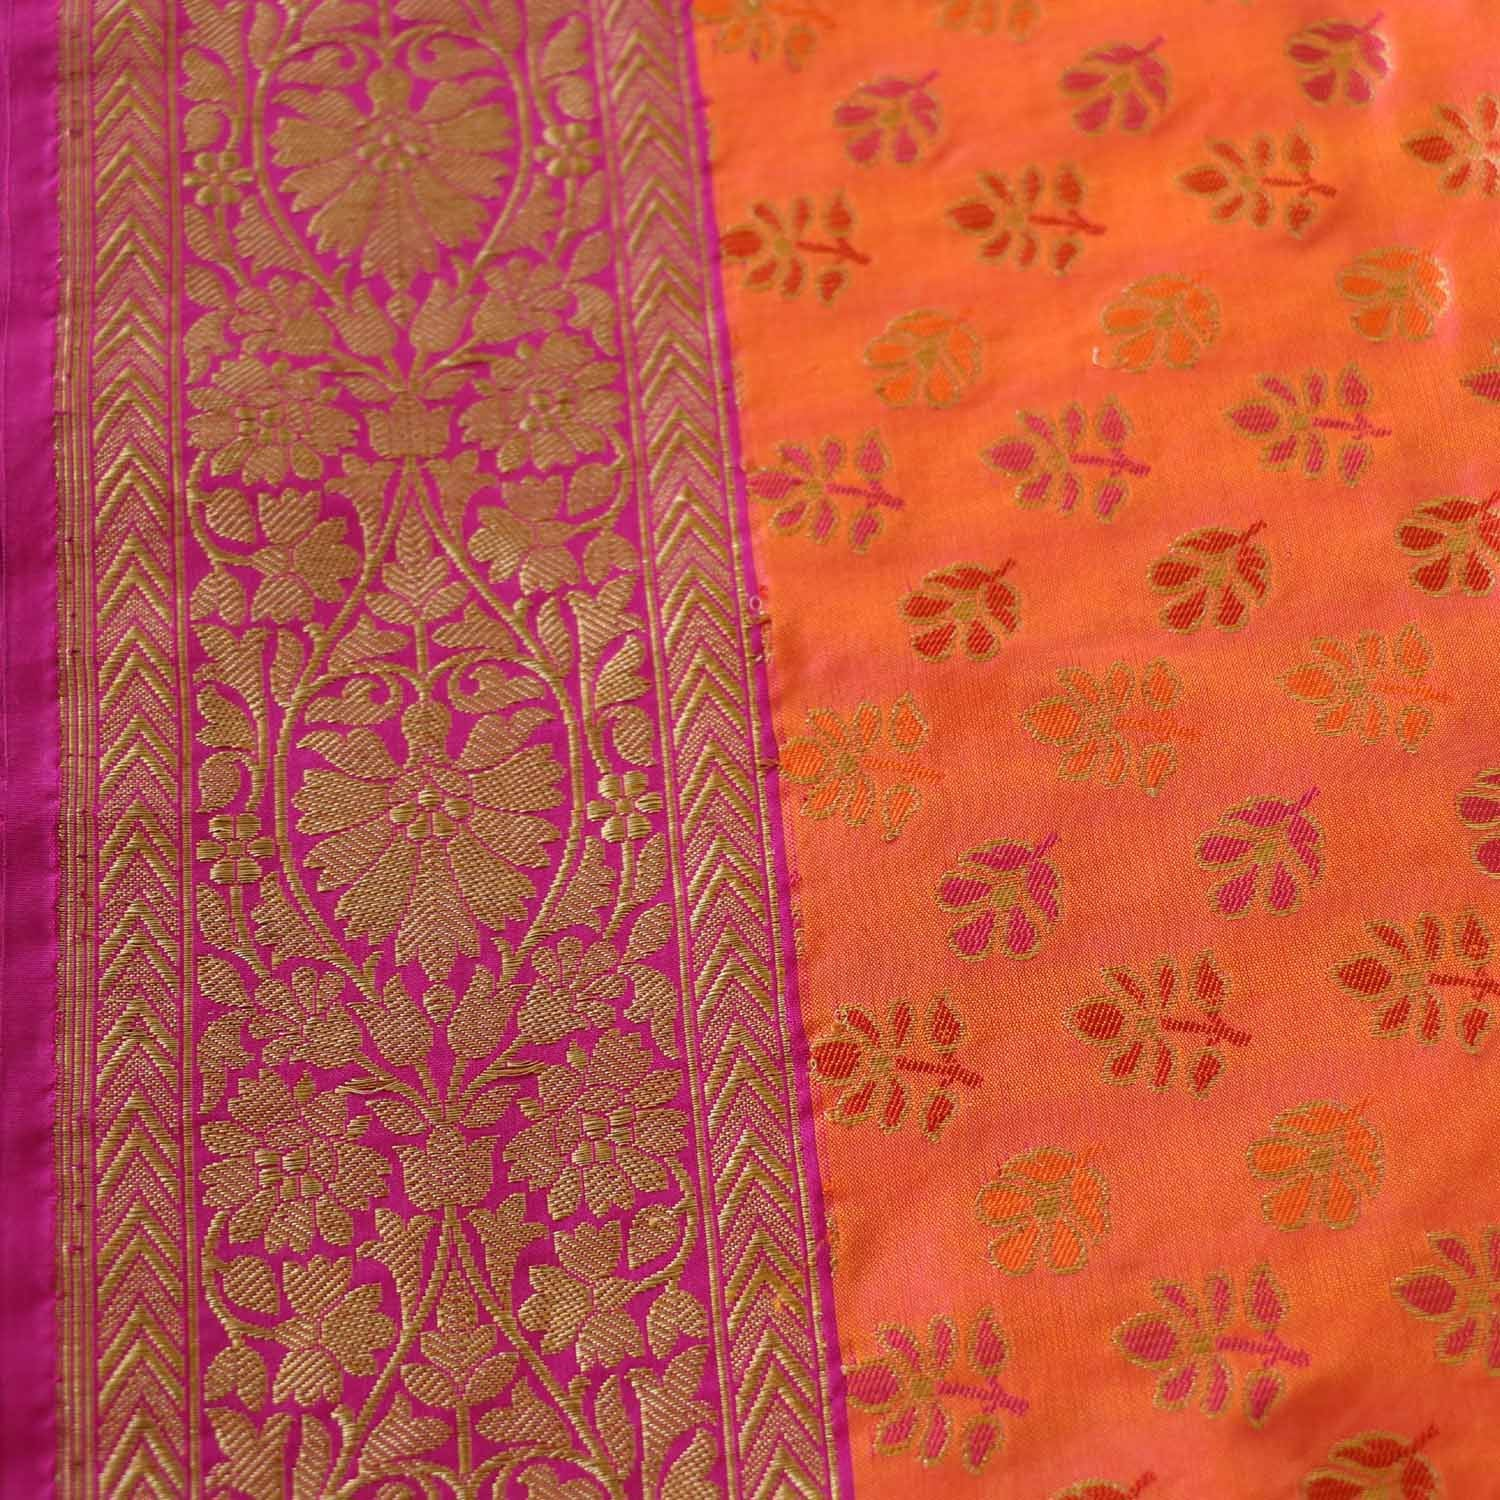 Light Orange-Magenta Pure Katan Banarasi Handloom Saree - Tilfi - 3